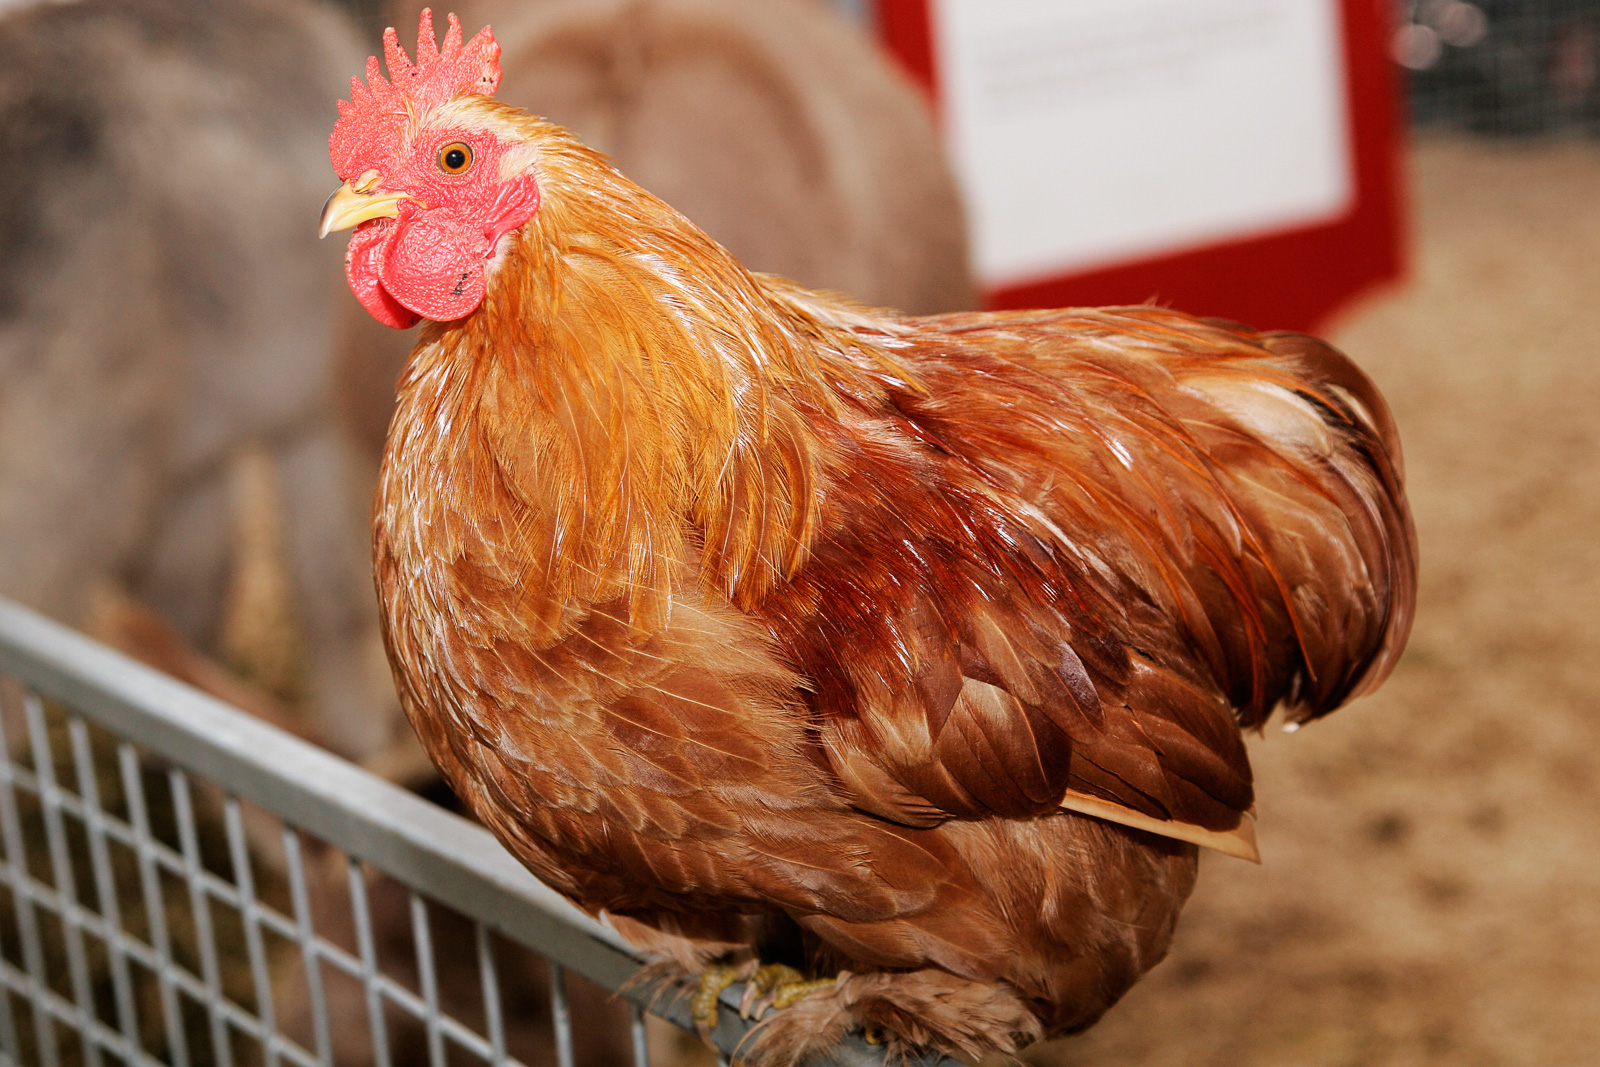 How chickens can help the poor